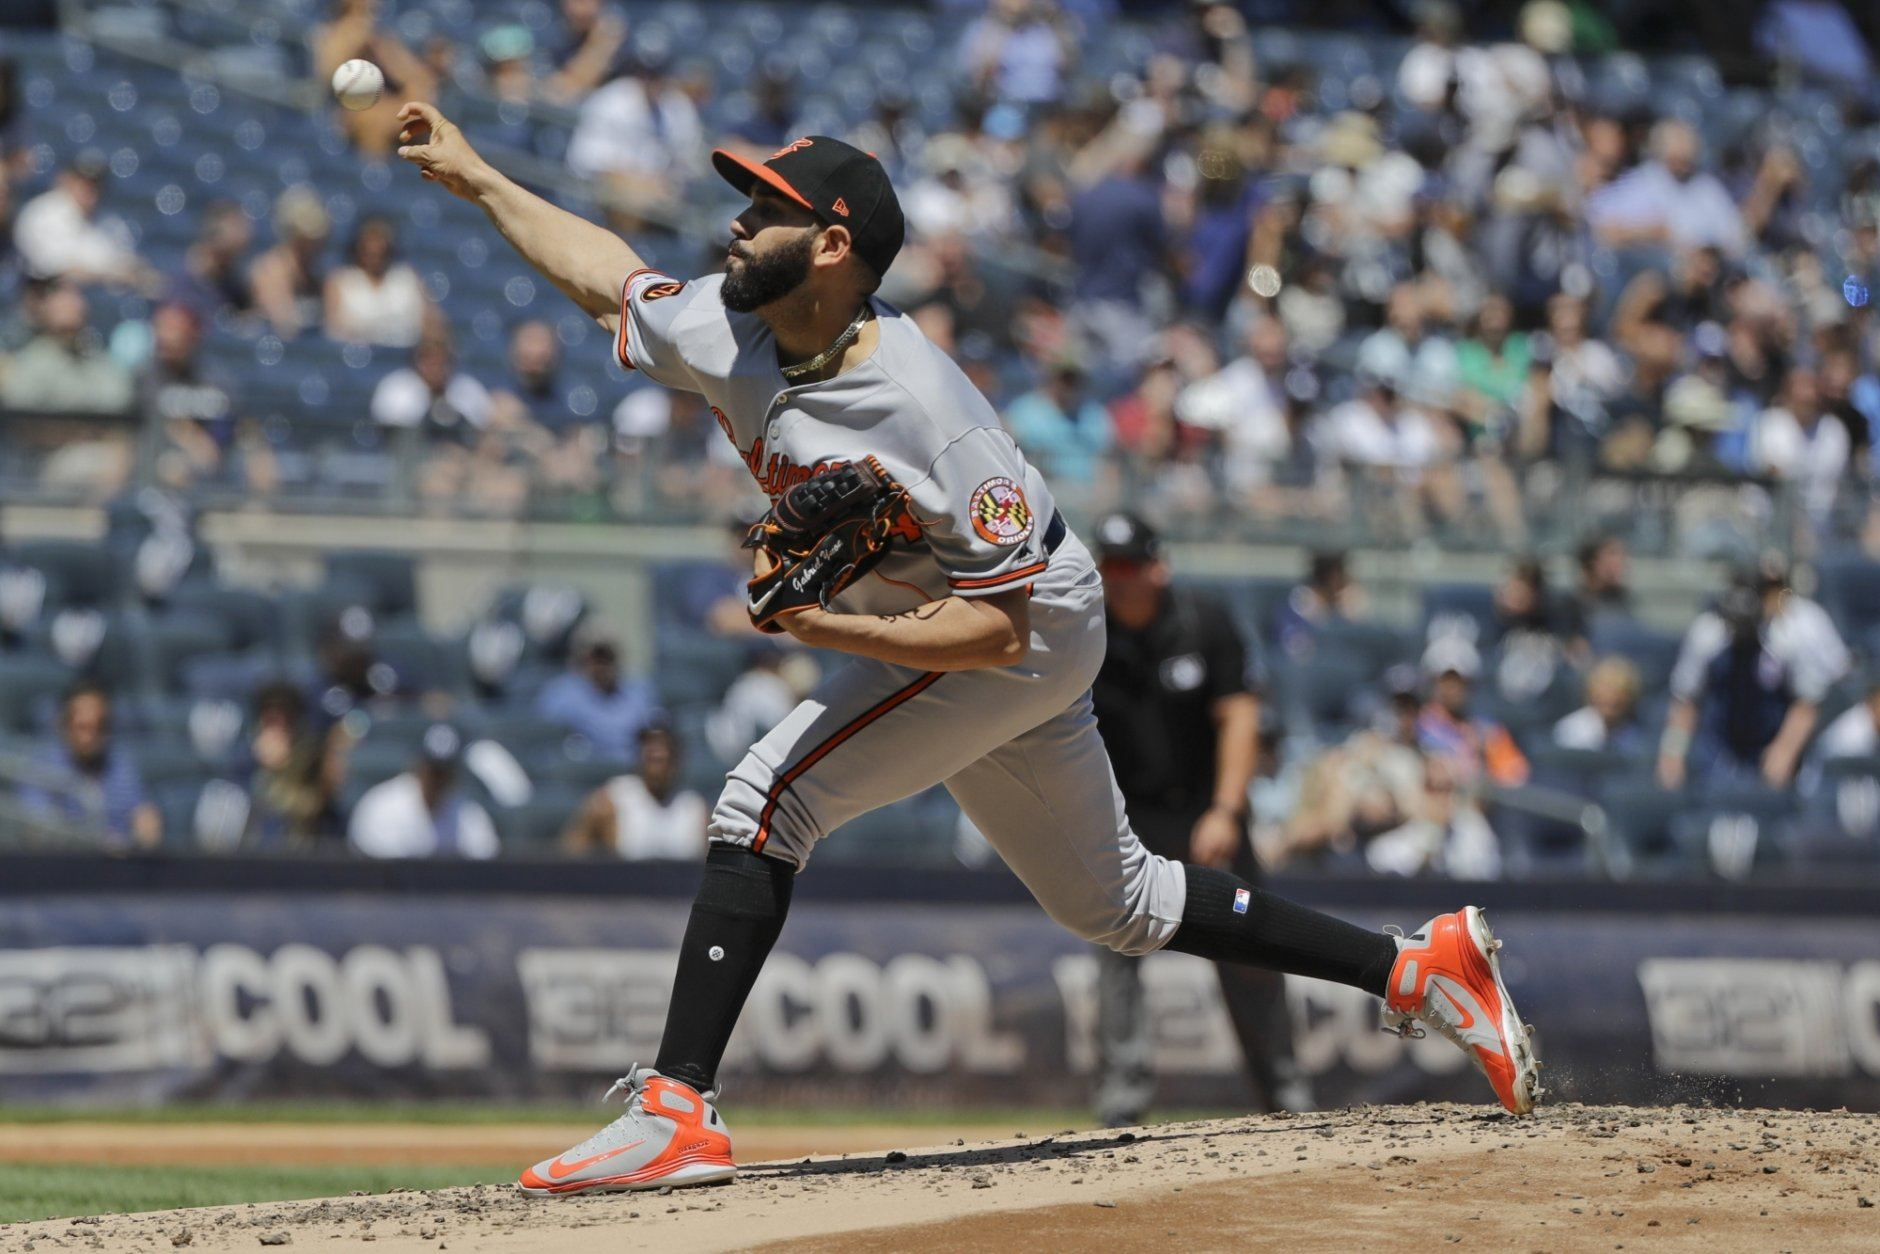 Baltimore Orioles' Gabriel Ynoa delivers a pitch during the first inning of a baseball game against the New York Yankees in the first game of a doubleheader Monday, Aug. 12, 2019, in New York. (AP Photo/Frank Franklin II)